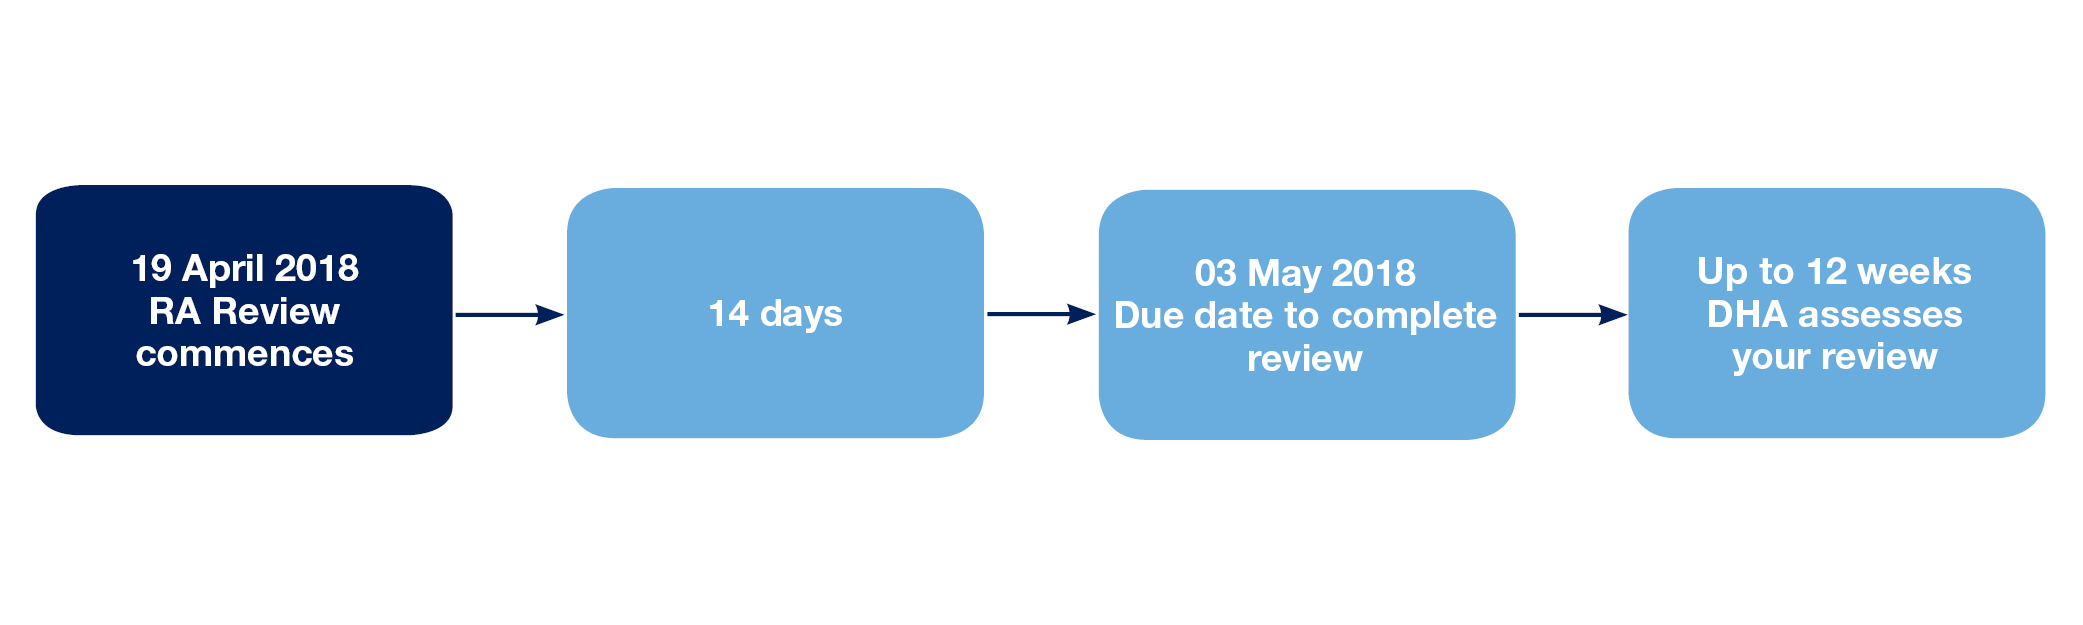 RA Review timeline 2018